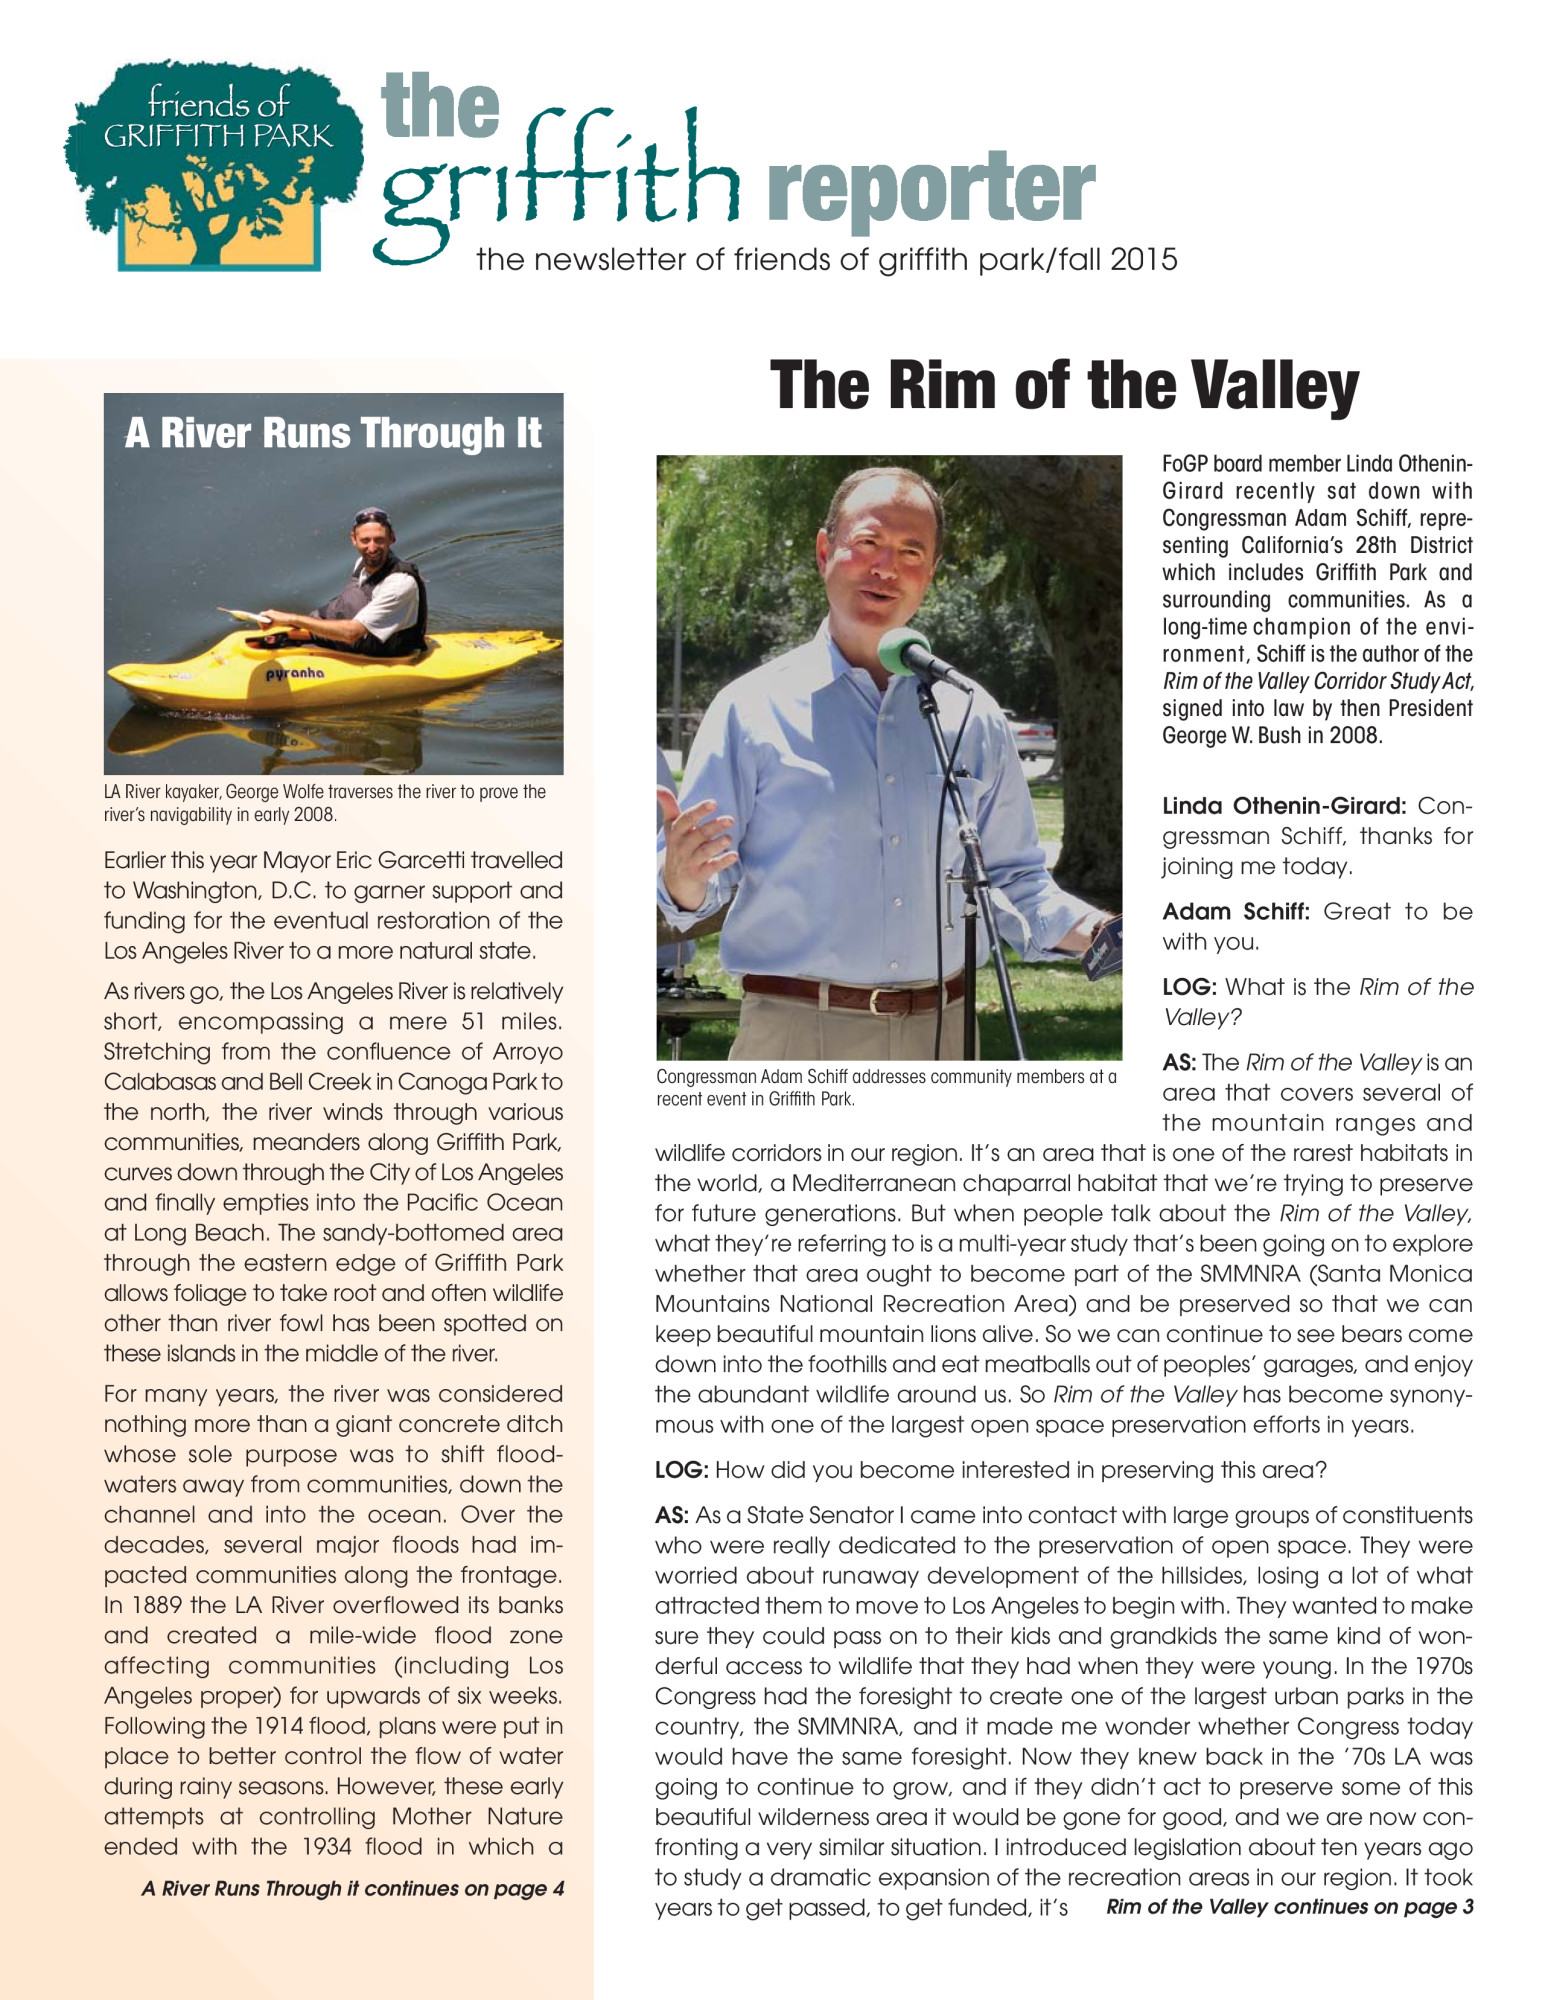 Griffith Reporter (Fall 2015)